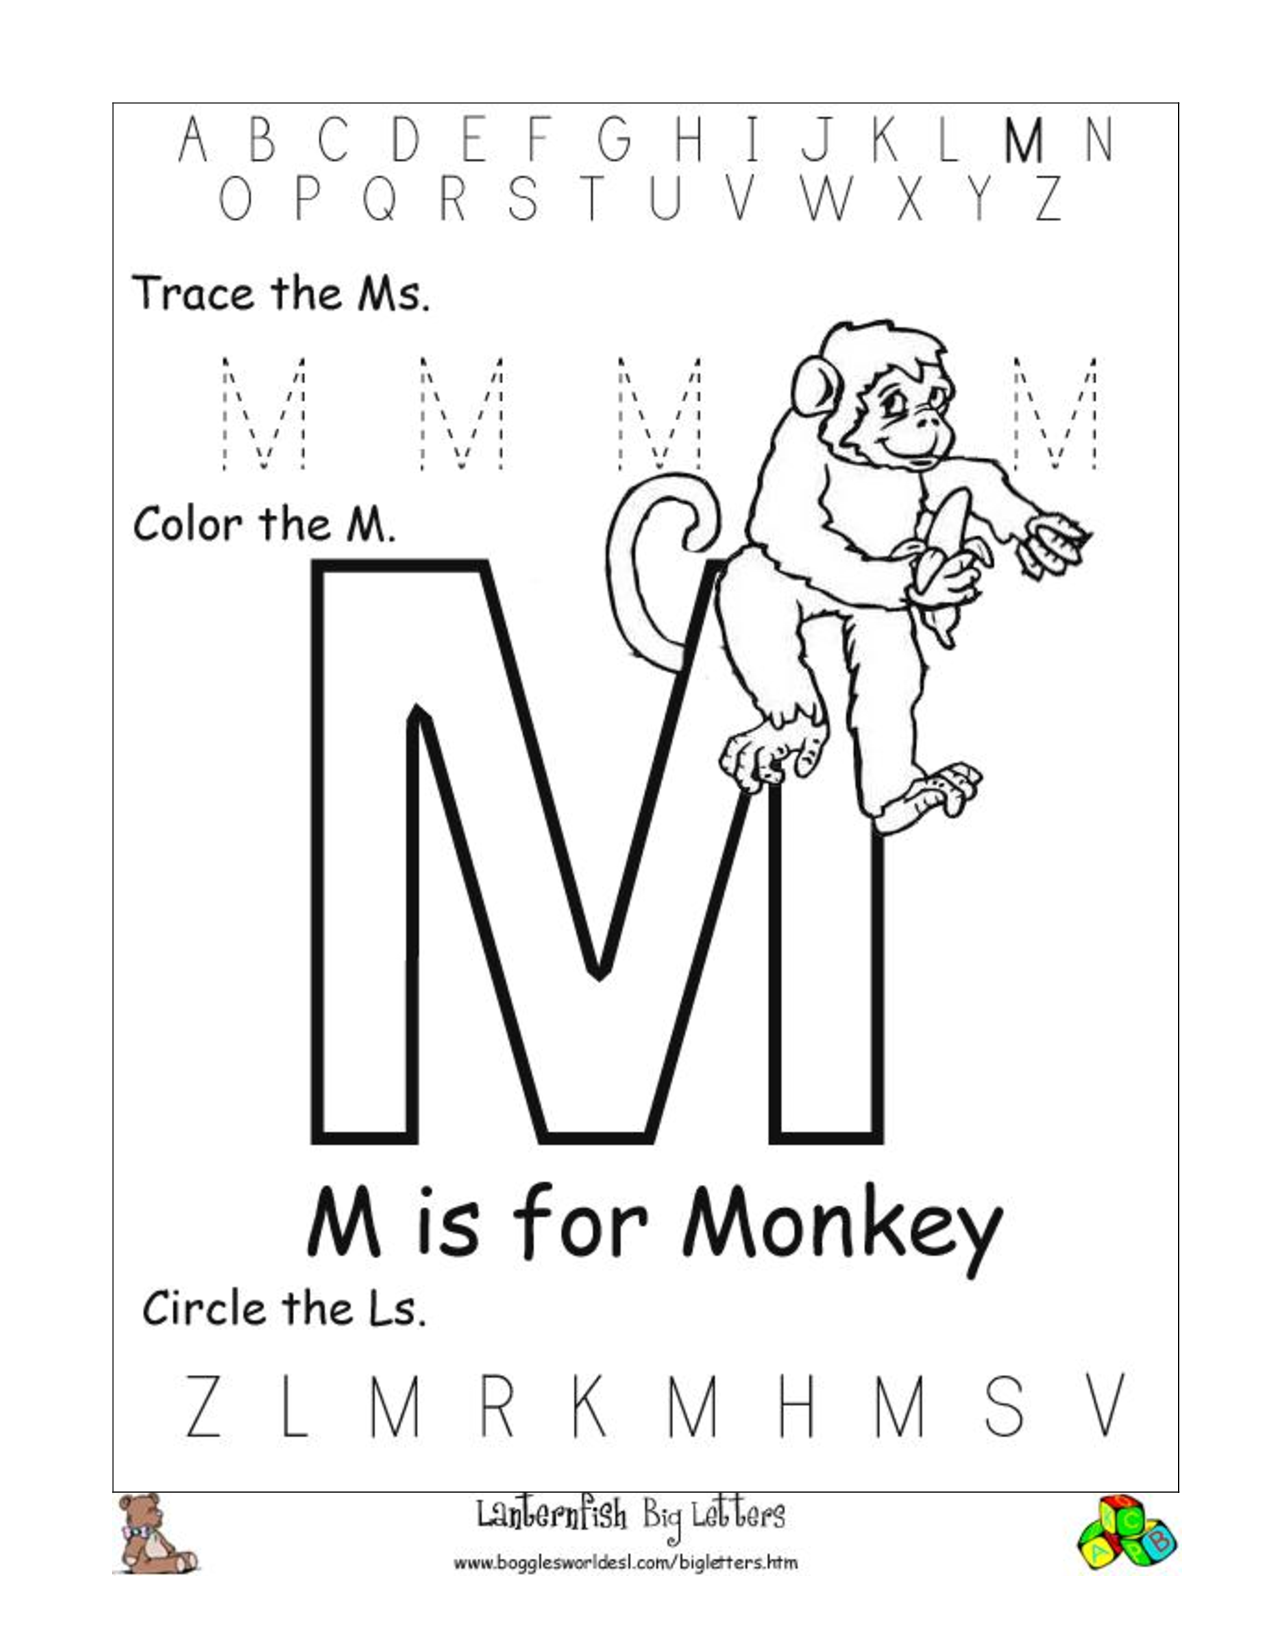 Letter M Worksheets For Kindergarten tracing letter m worksheets – Letter M Worksheets for Kindergarten